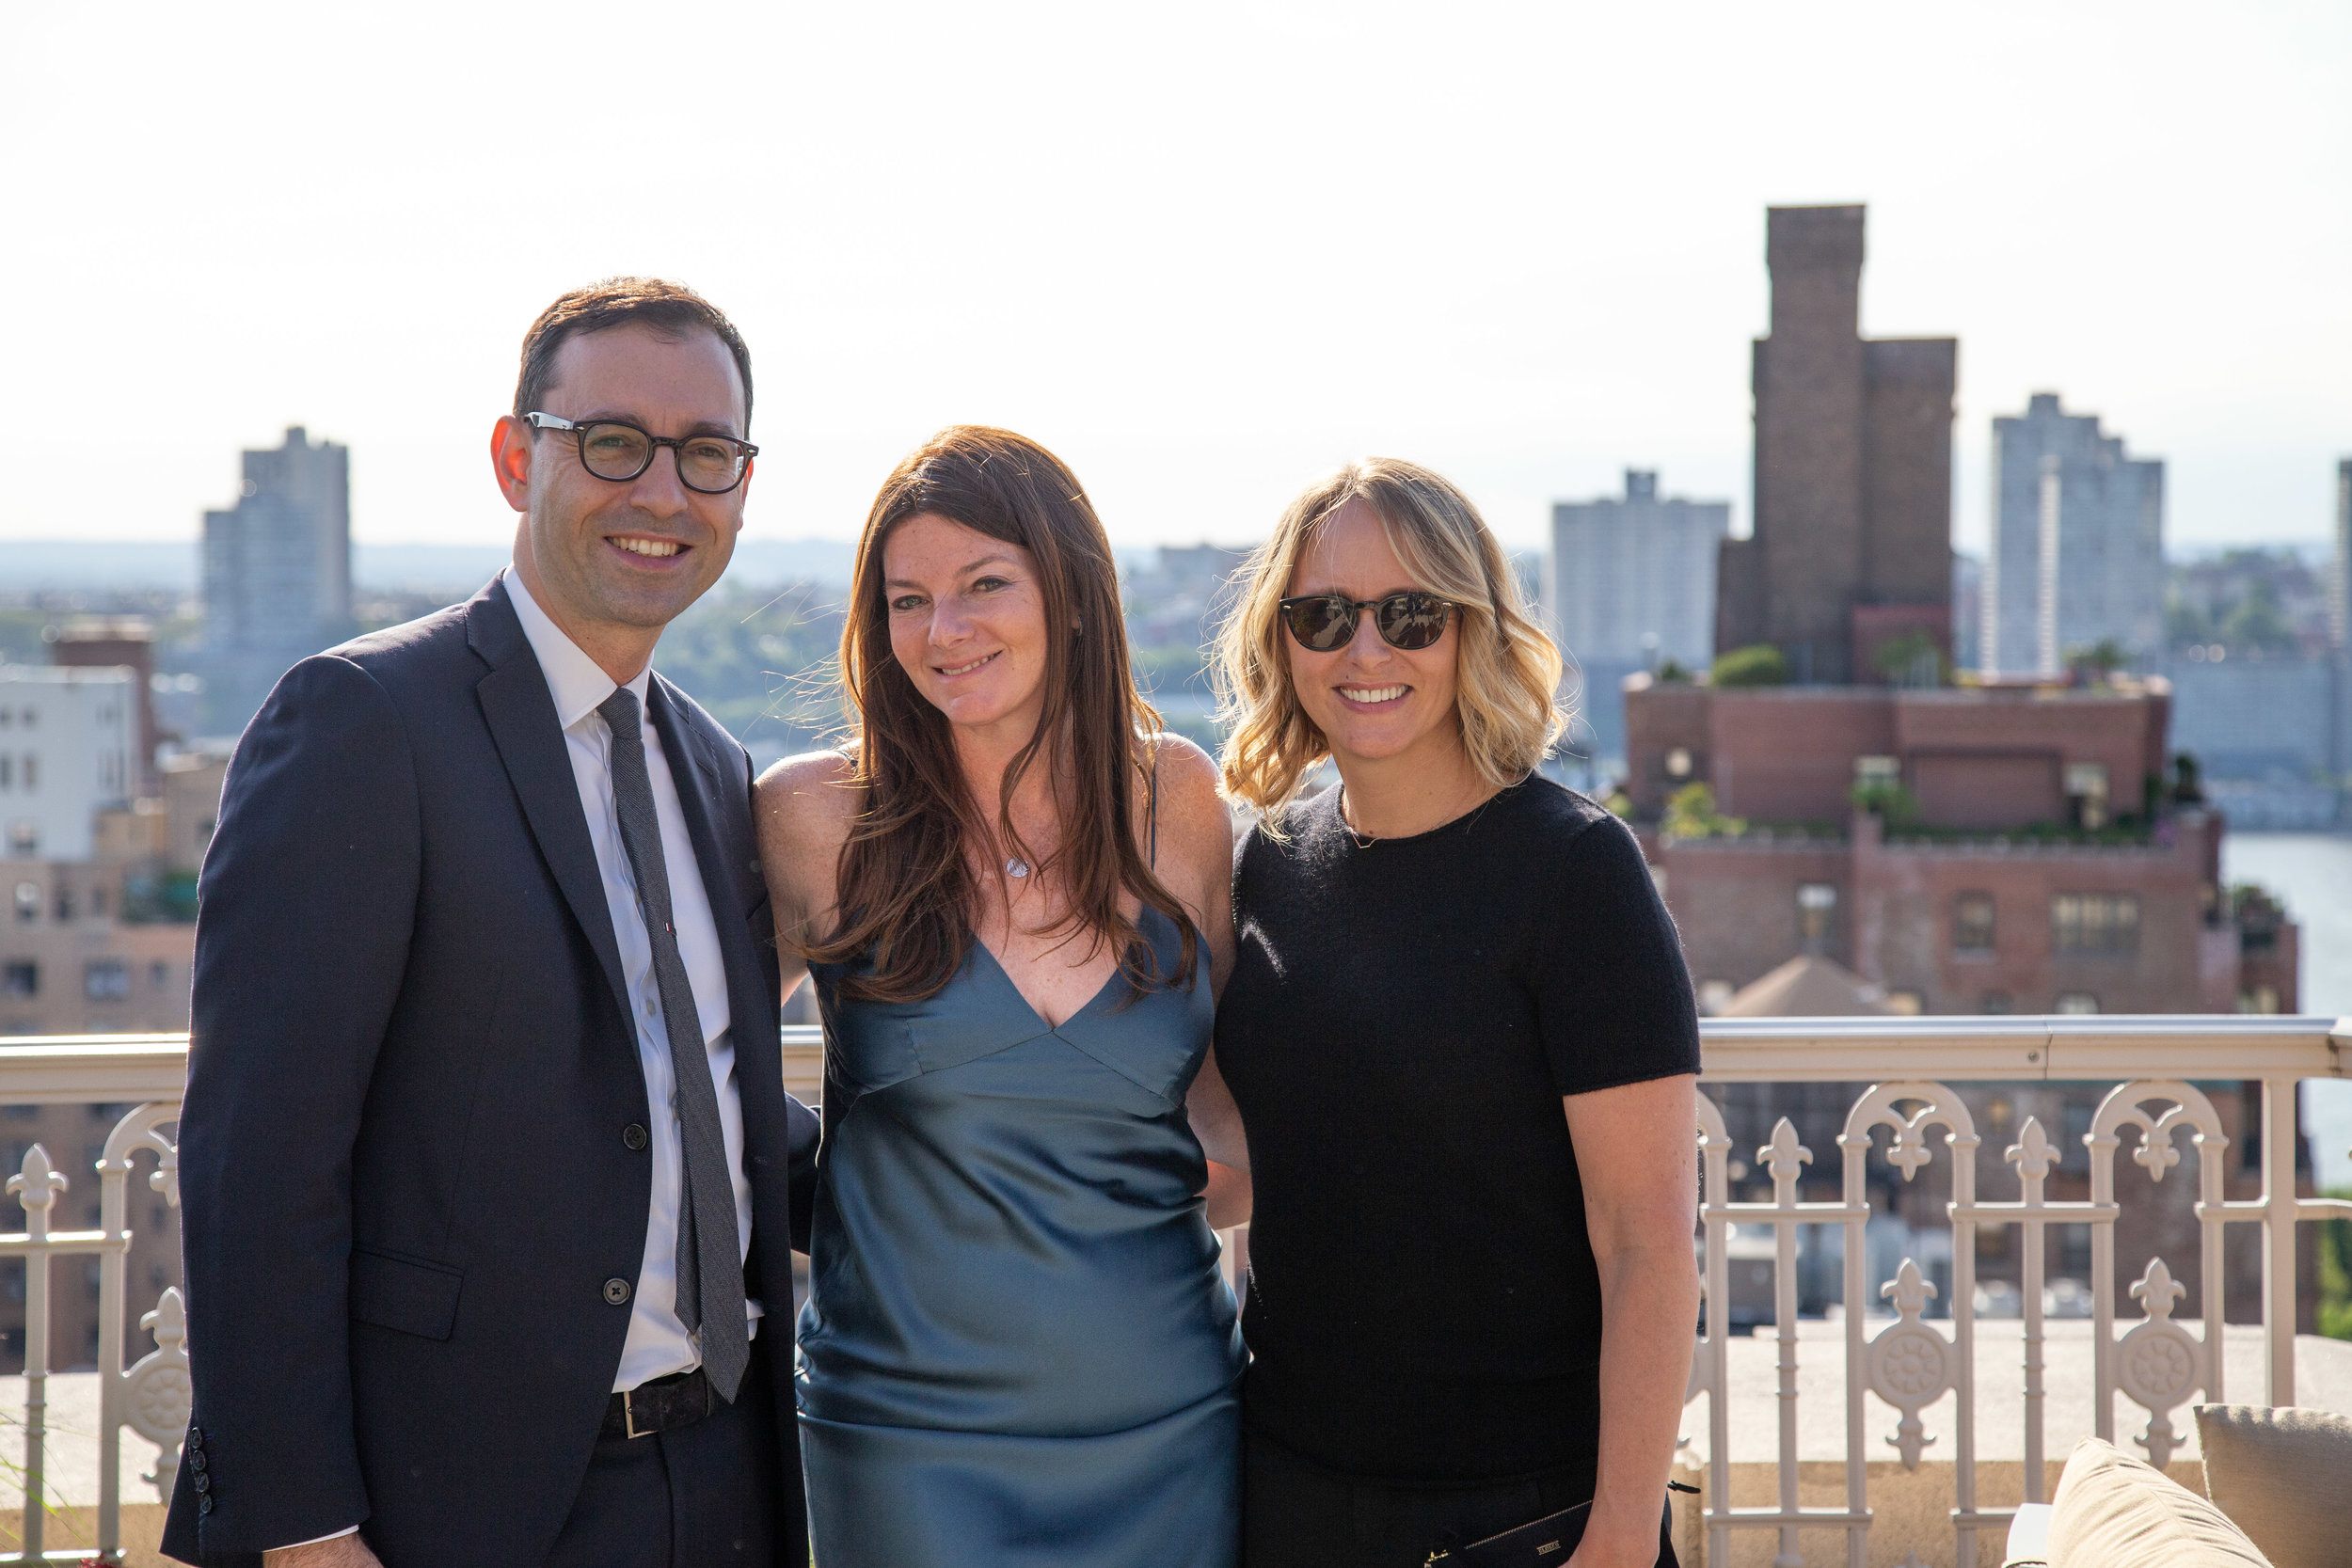 Laurent Morali, President, Kushner Companies; Jennifer Kalish, Agent, Douglas Elliman; and Liat Morali, wife of Laurent